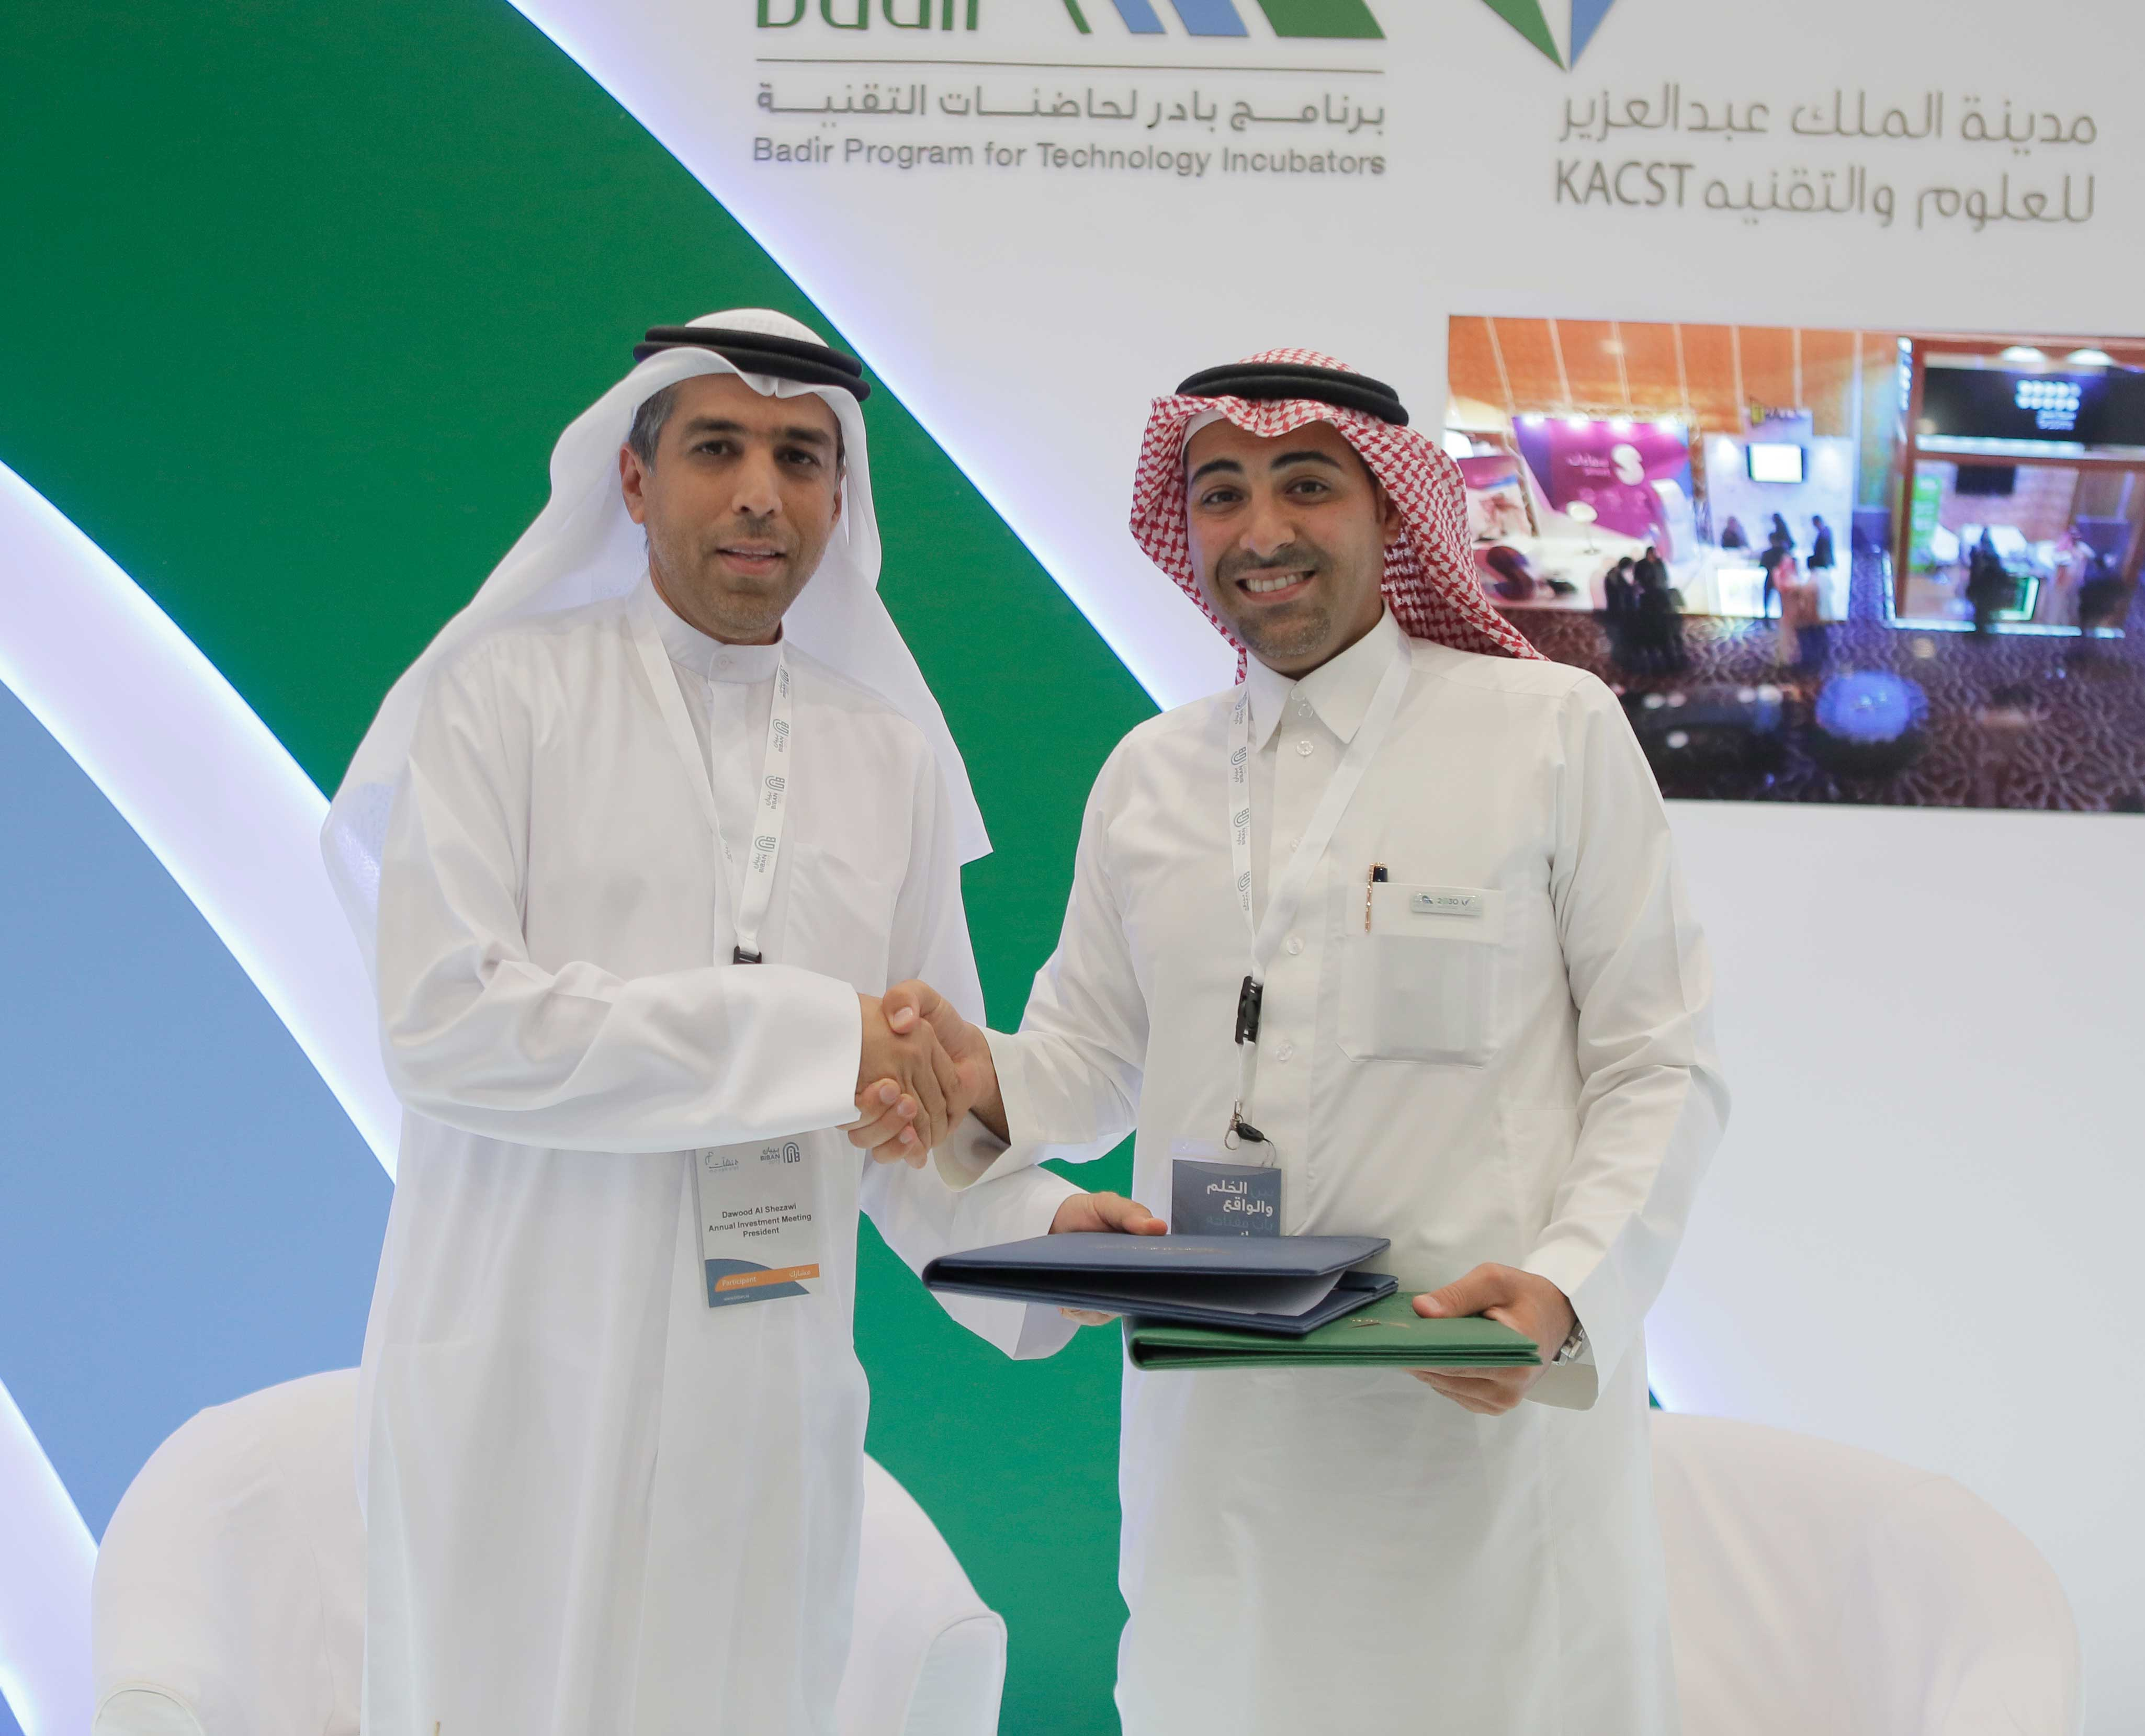 Saudi - Emirati Cooperation to Encourage Start-ups and Support Innovative Projects